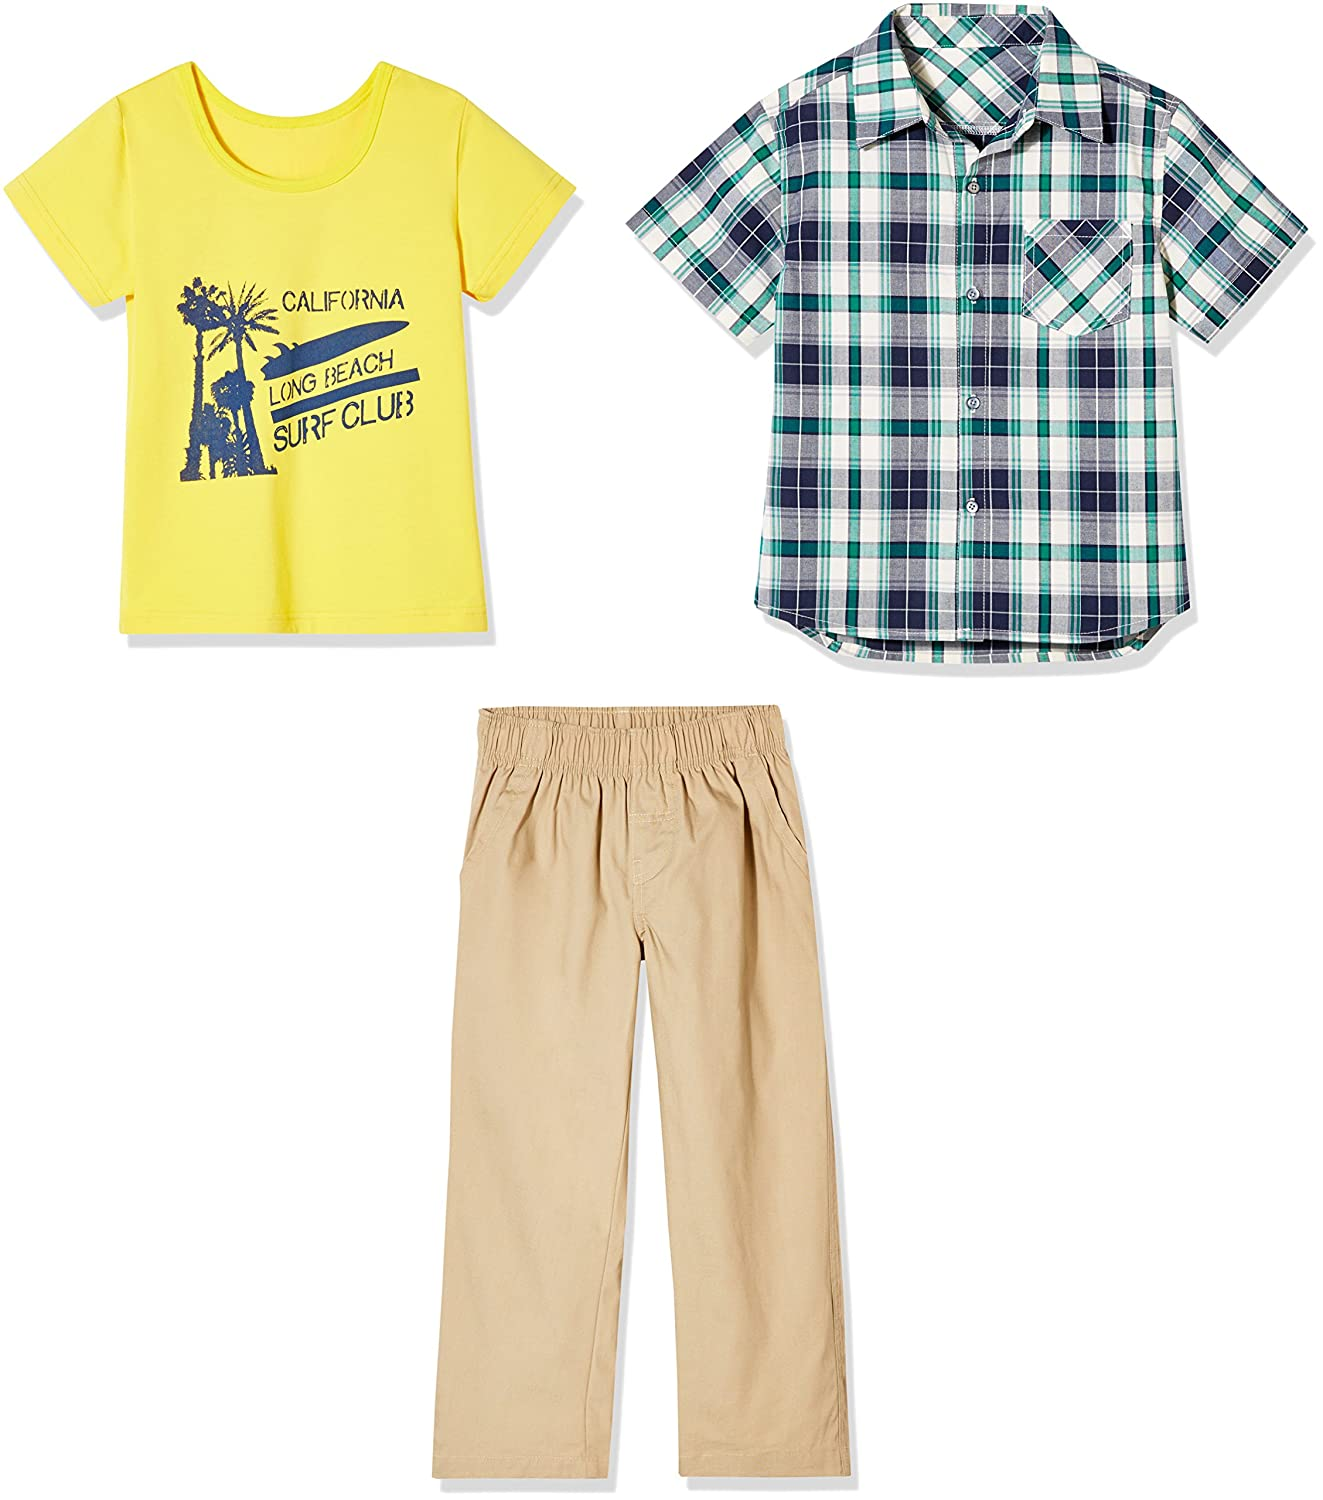 0414265e0e2b Sprout Star 3-Pcs Set Cotton Green Check Shirt, Yellow Graphic Tee and  Khaki Leisure Pants for Toddlers and Little Boy